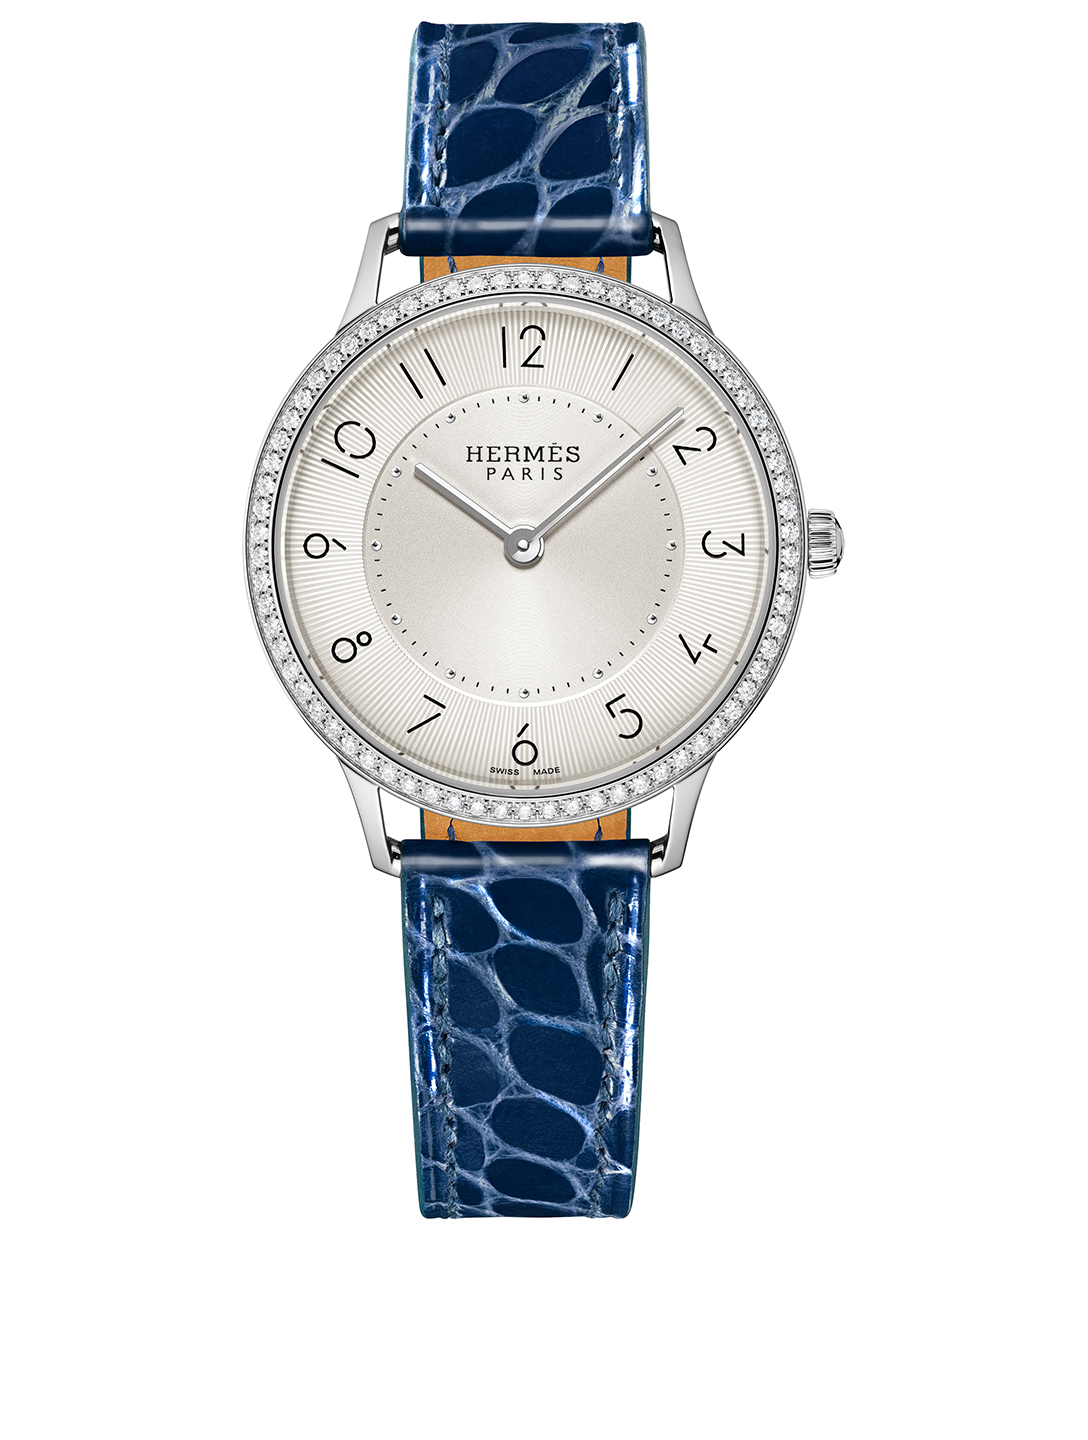 HERMÈS Slim D'Hermes Stainless Steel Alligator Strap Watch With Diamonds Women's Blue